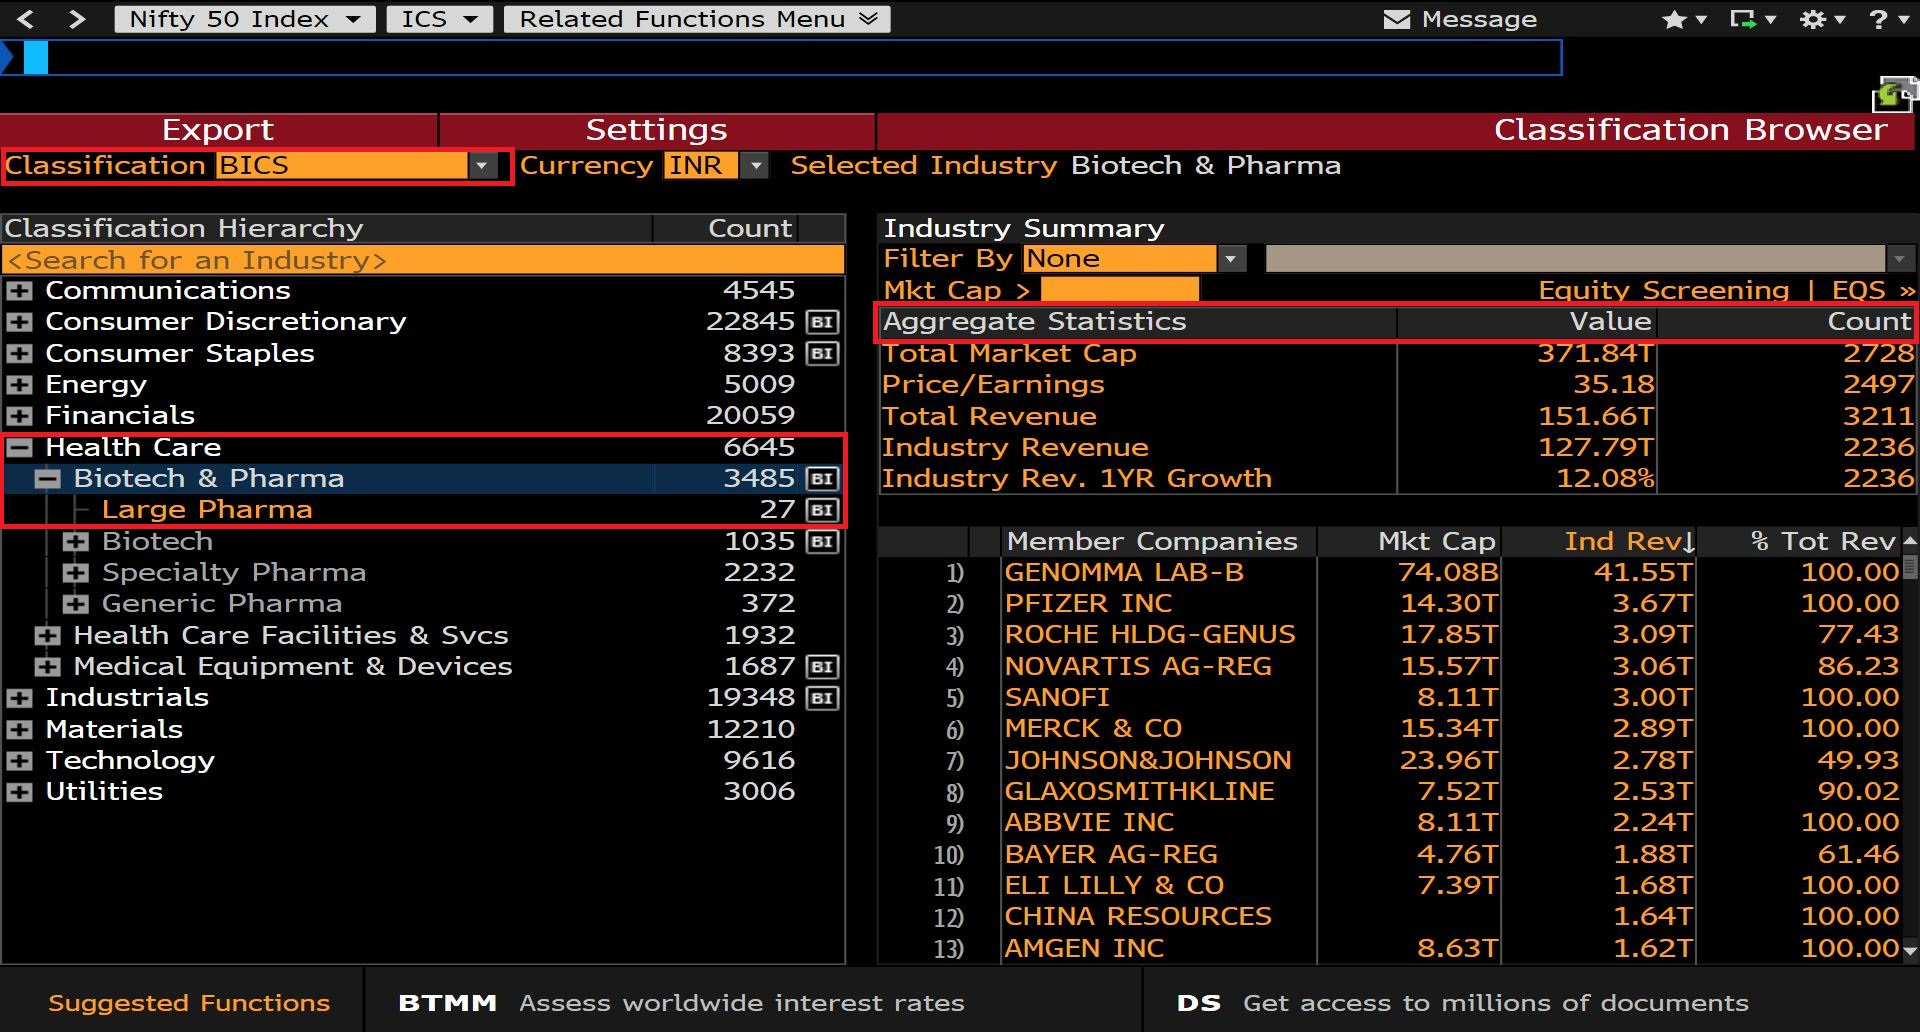 Login to Bloomberg (Available in Library) then Search for BICS and Select Health Care and Click Biotech & Pharma